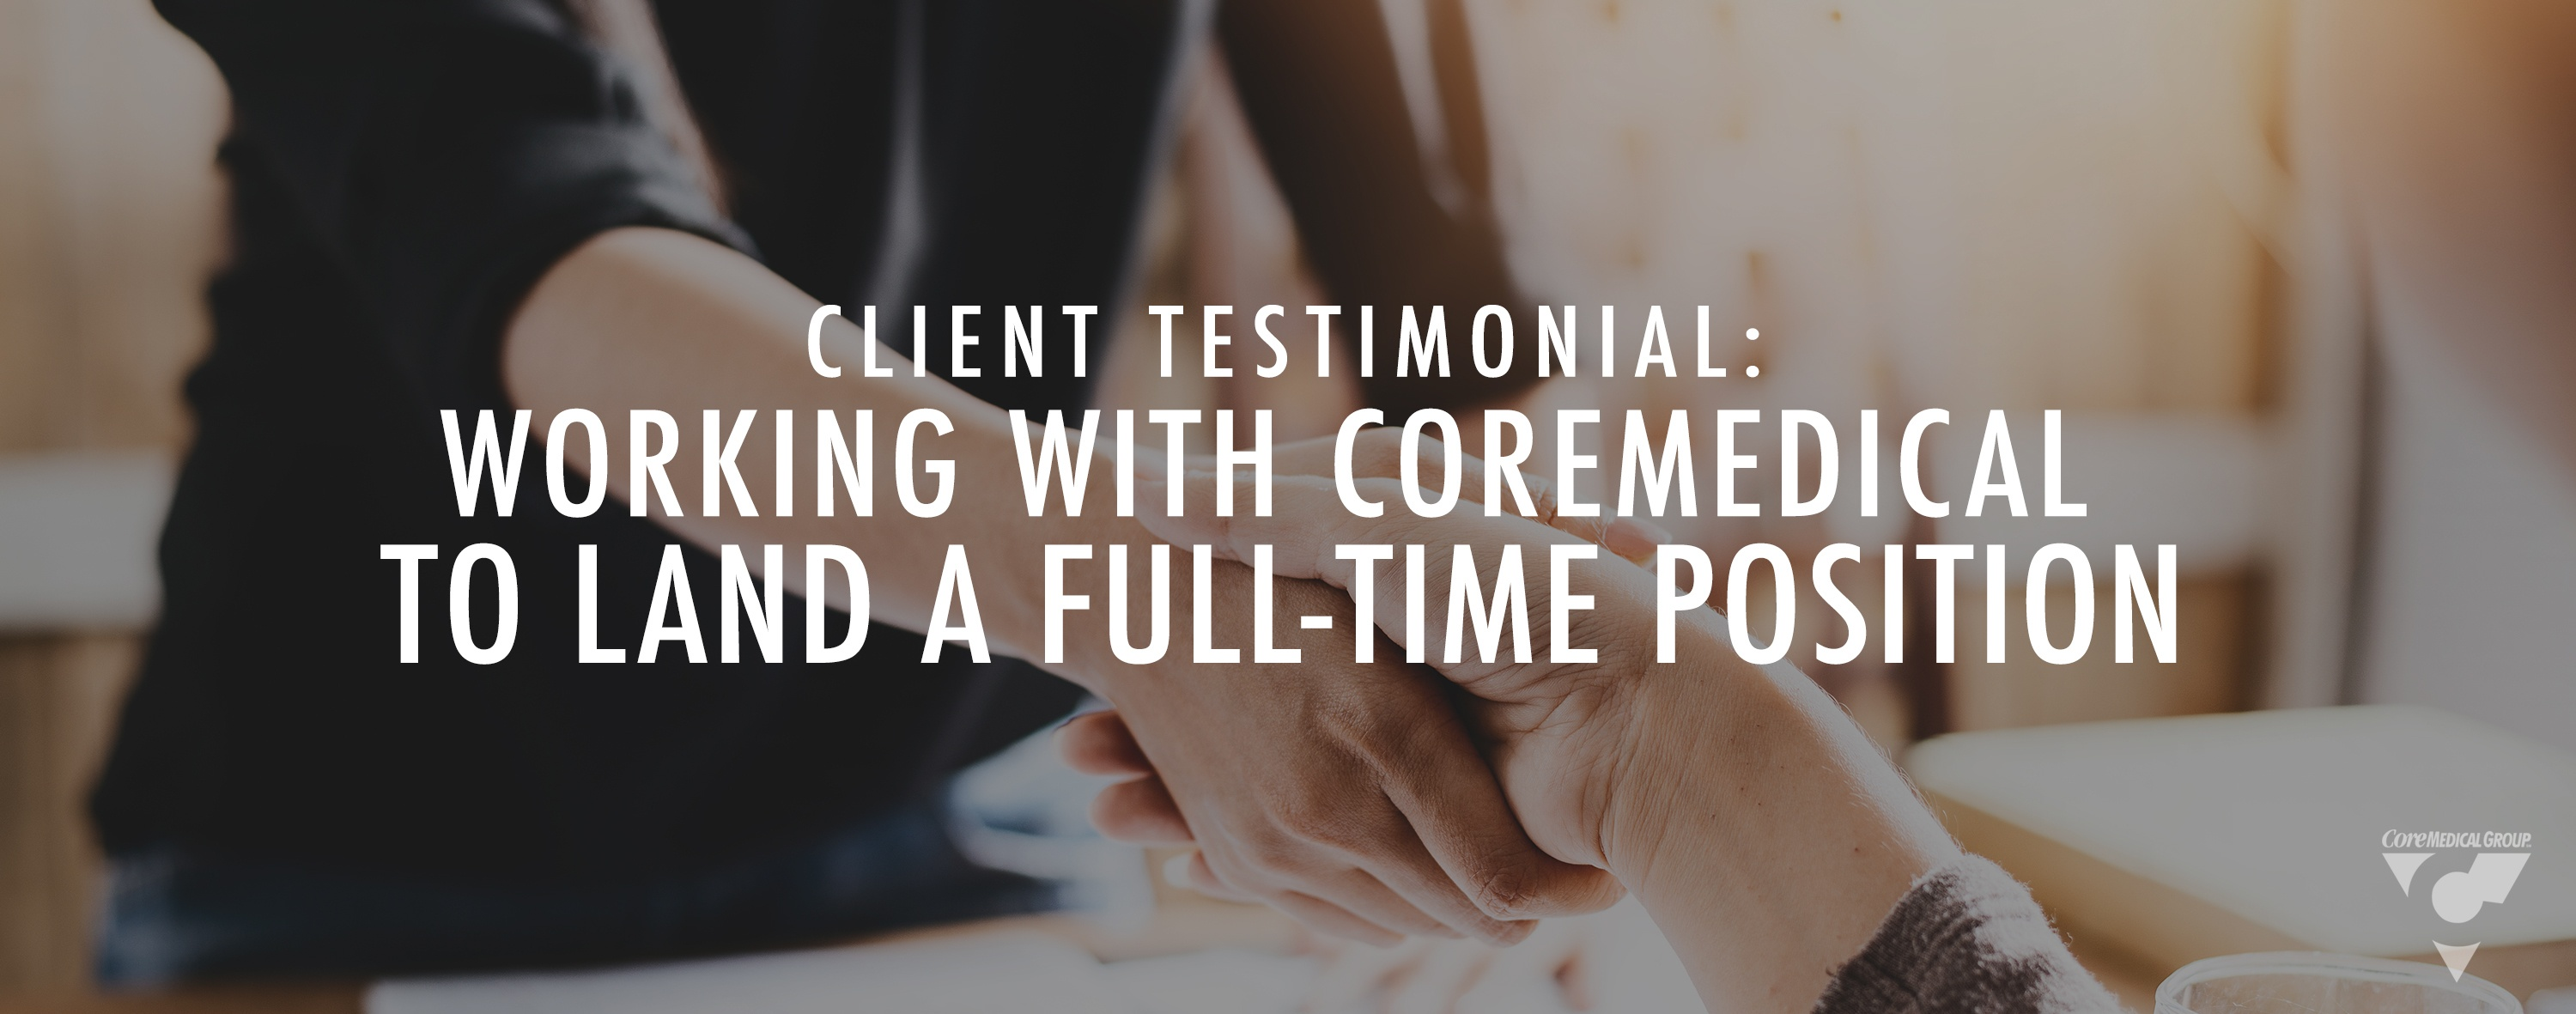 CMG Blog FI - Working With CoreMed to Land a Full time Position